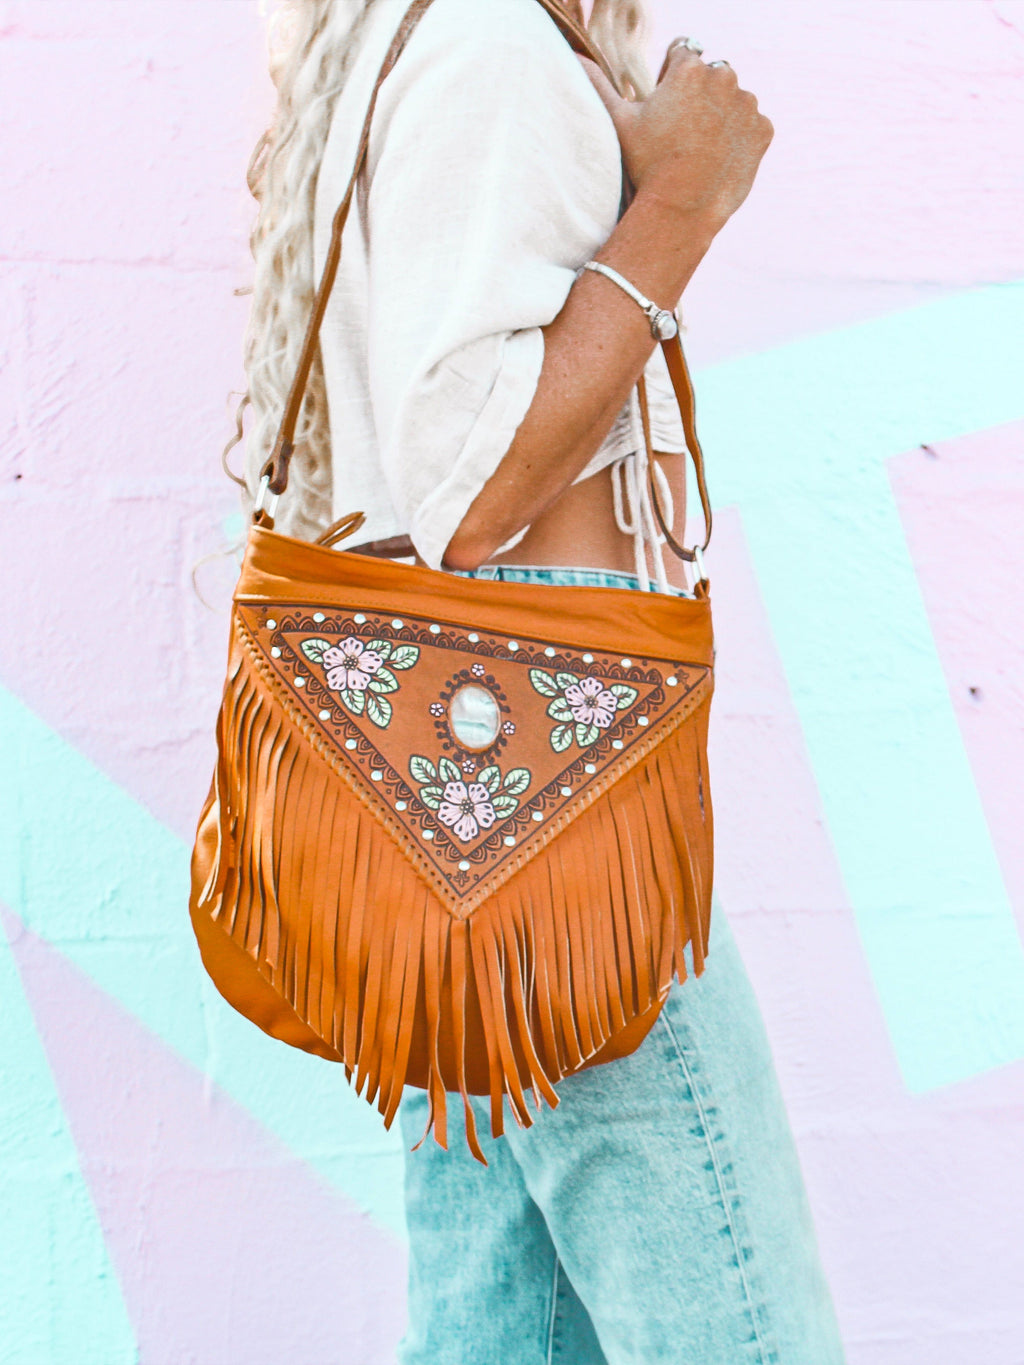 LIMITED EDITION - Penny Lane Bag